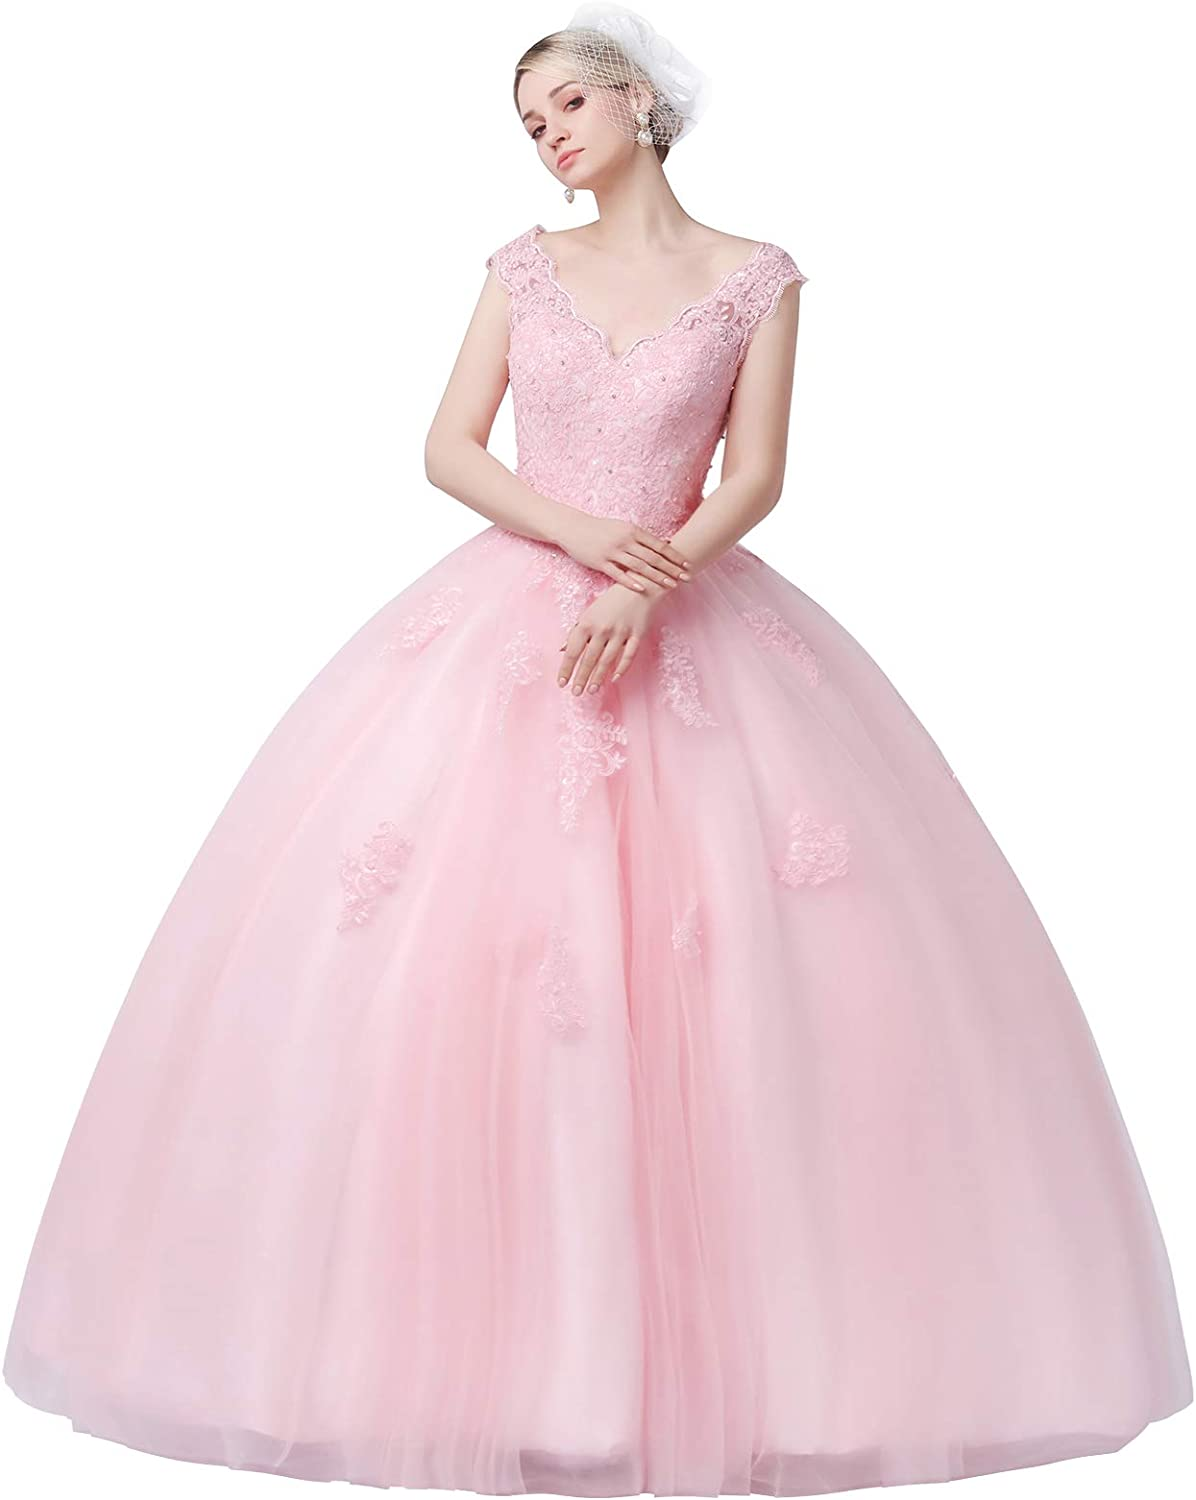 CharmingBridal Quinceanera Dresses Lace Prom Gown Finally popular brand 15 Clearance SALE Limited time Ball Sweet